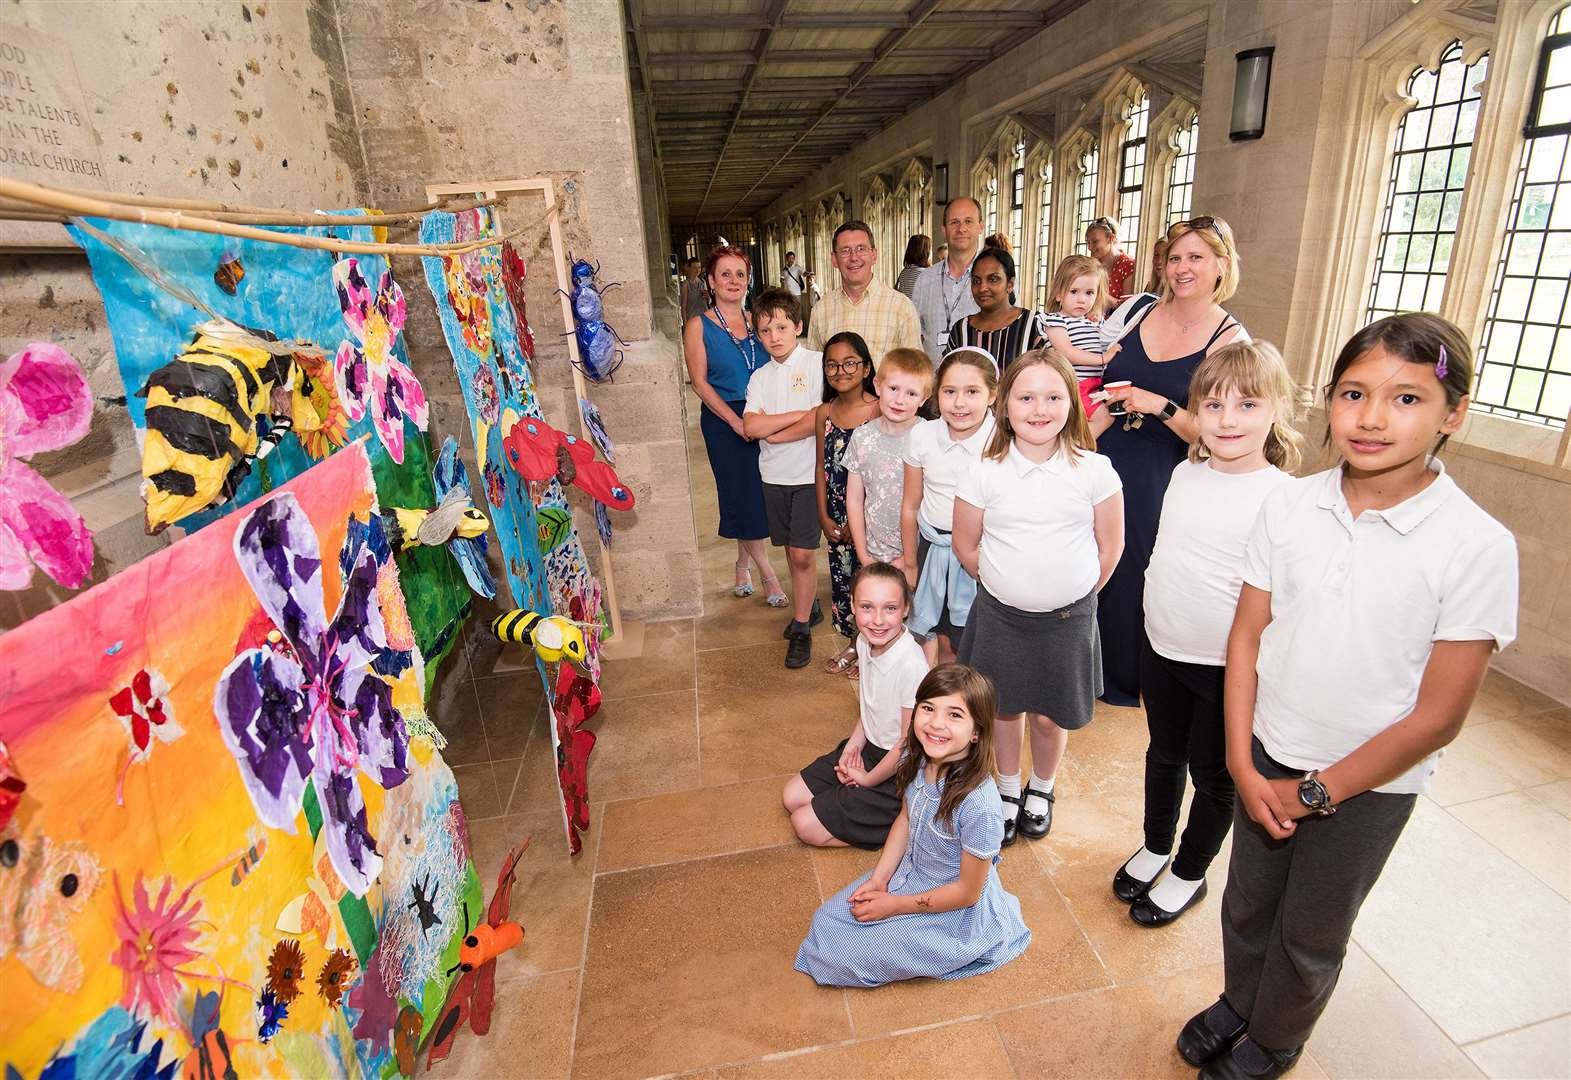 Take a look at community arts project at St Edmundsbury Cathedral